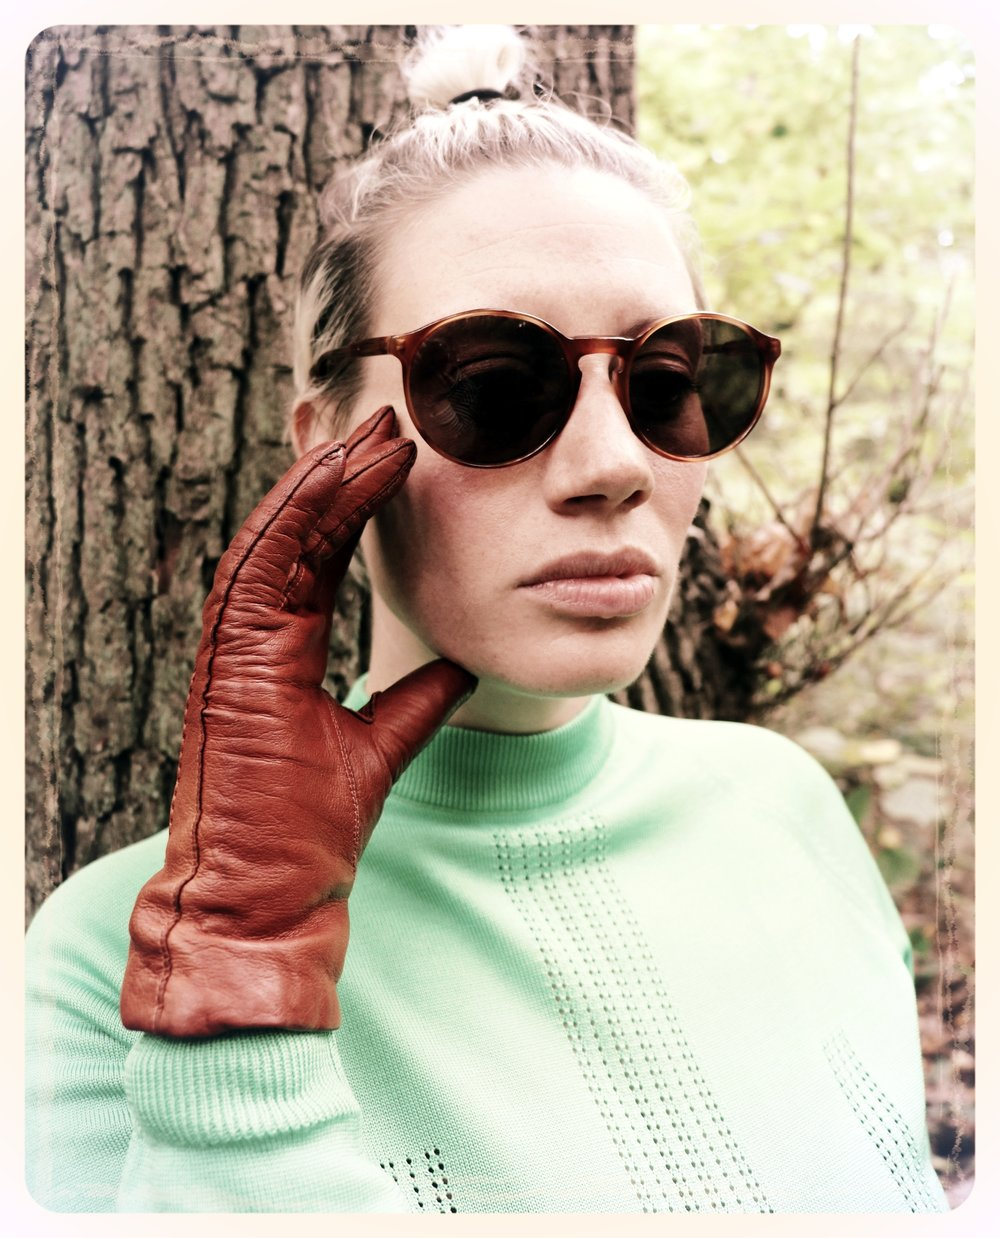 Peep Eyewear, Vintage Sunglasses, 1960s, Aubrey AW, Worn against a tree, Autumn Winter collection